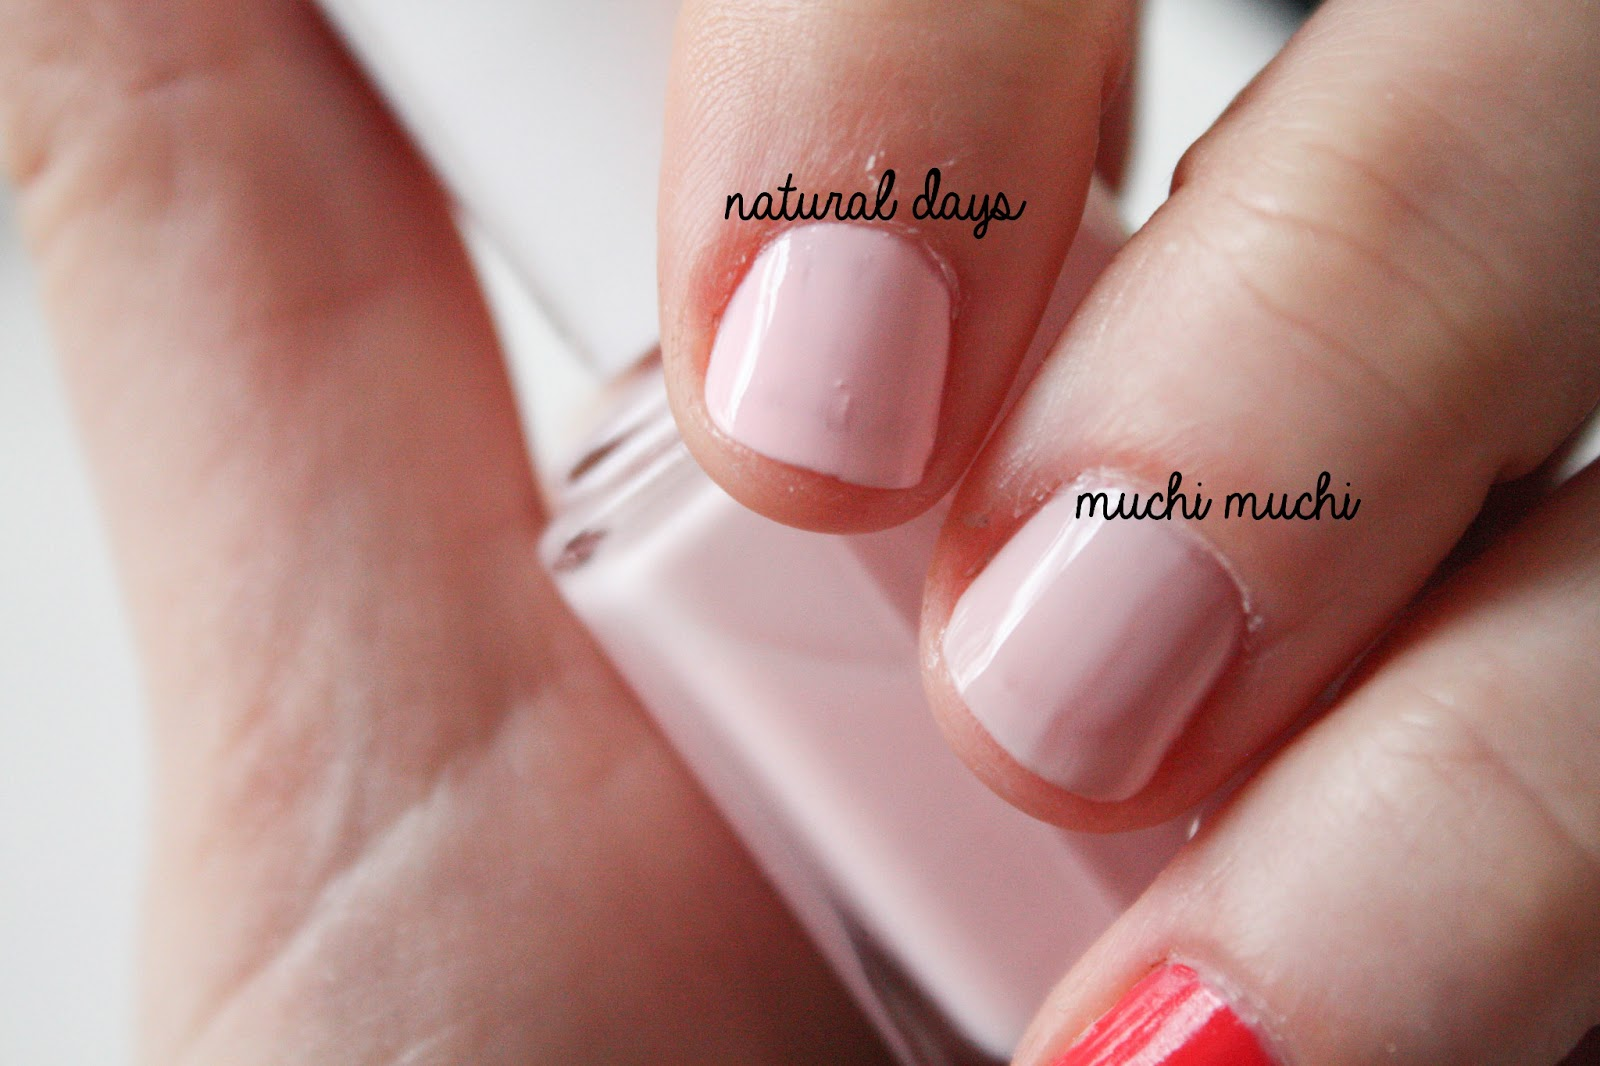 MUA vs ESSIE dupes & differences - Cityscape Bliss